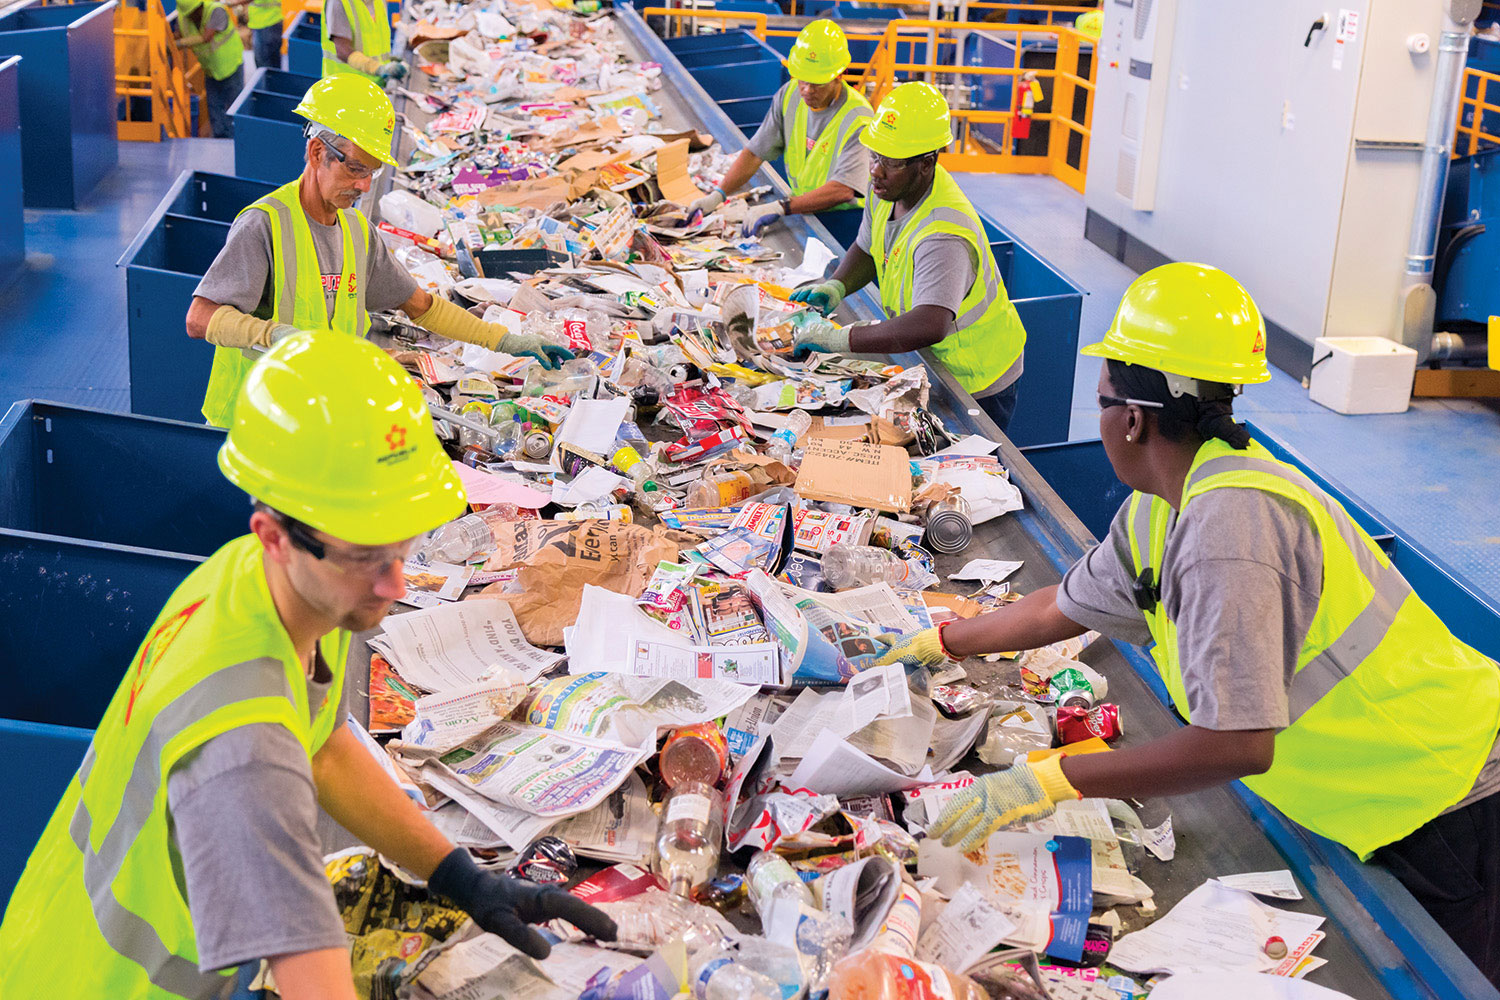 Sorting recyclables at a Republic Services facility.